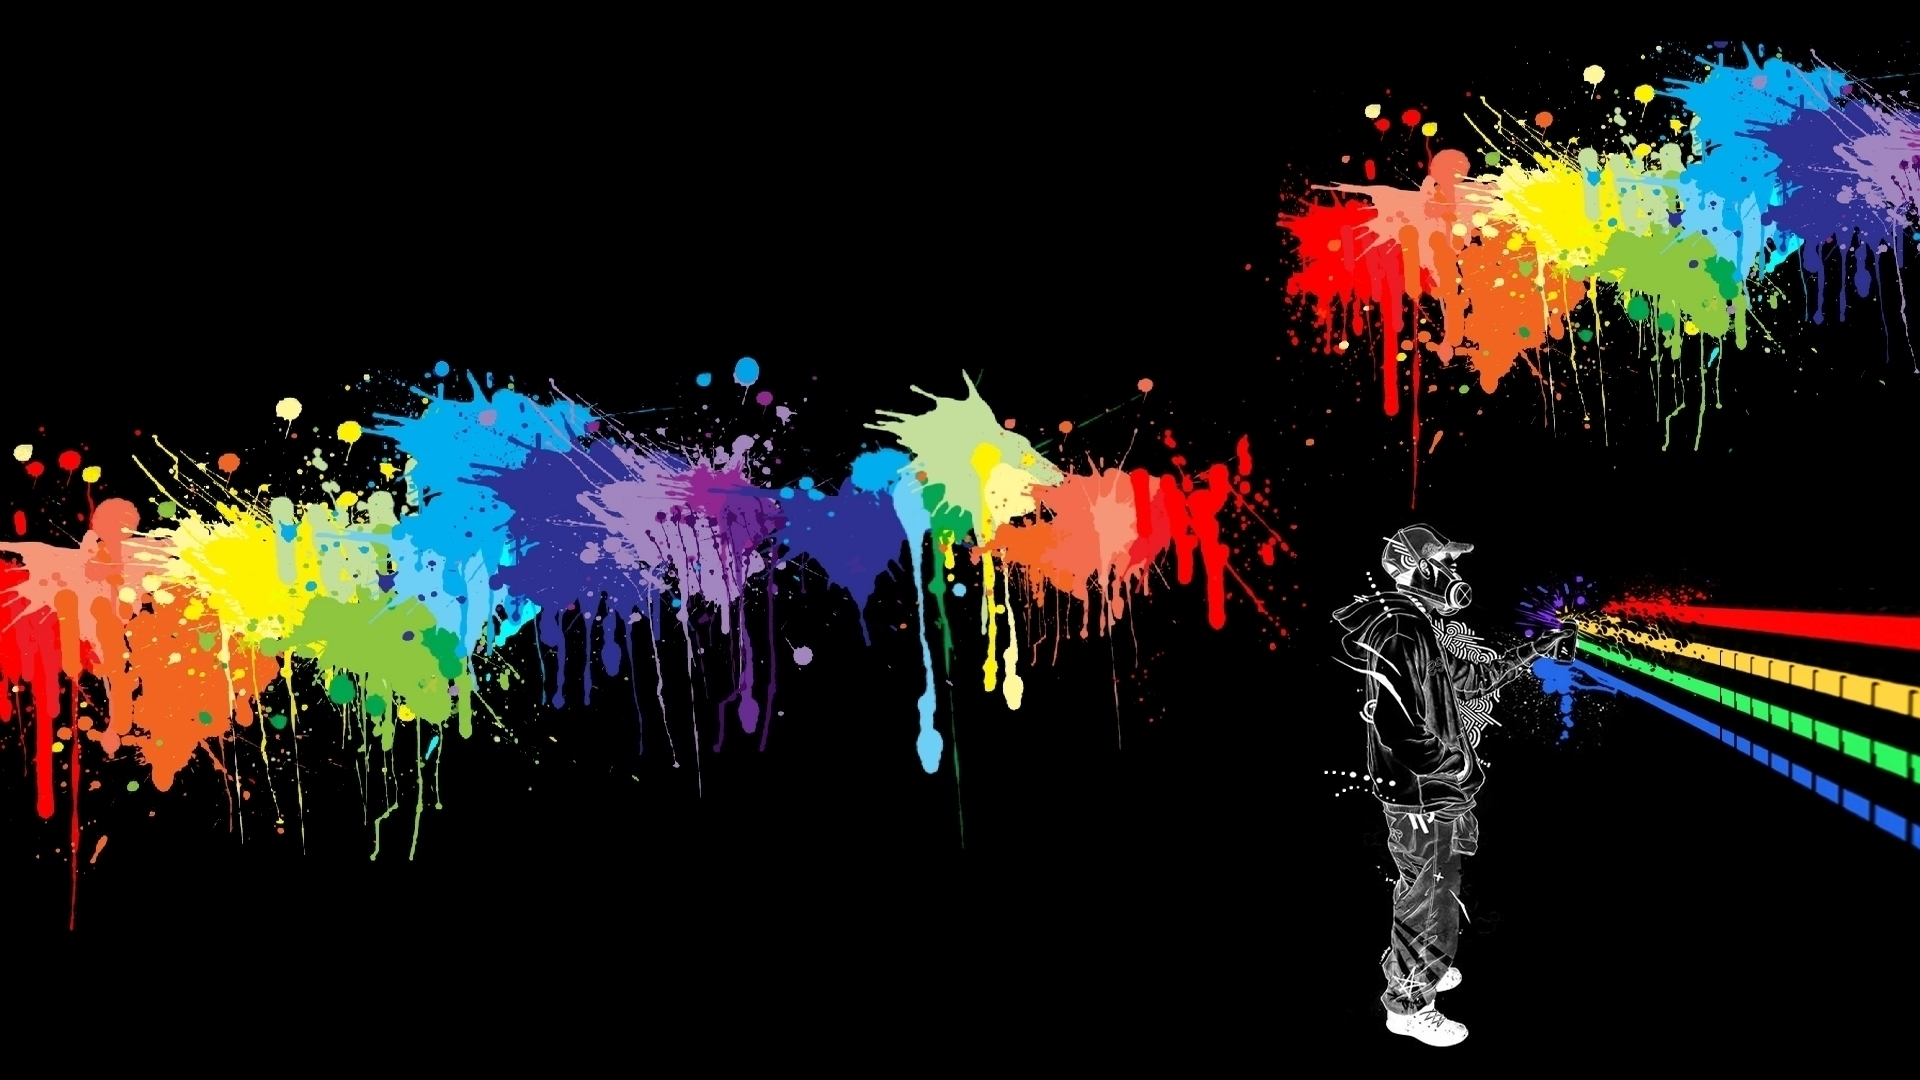 graffiti wallpaper hd cool 2150 wallpaper walldiskpaper